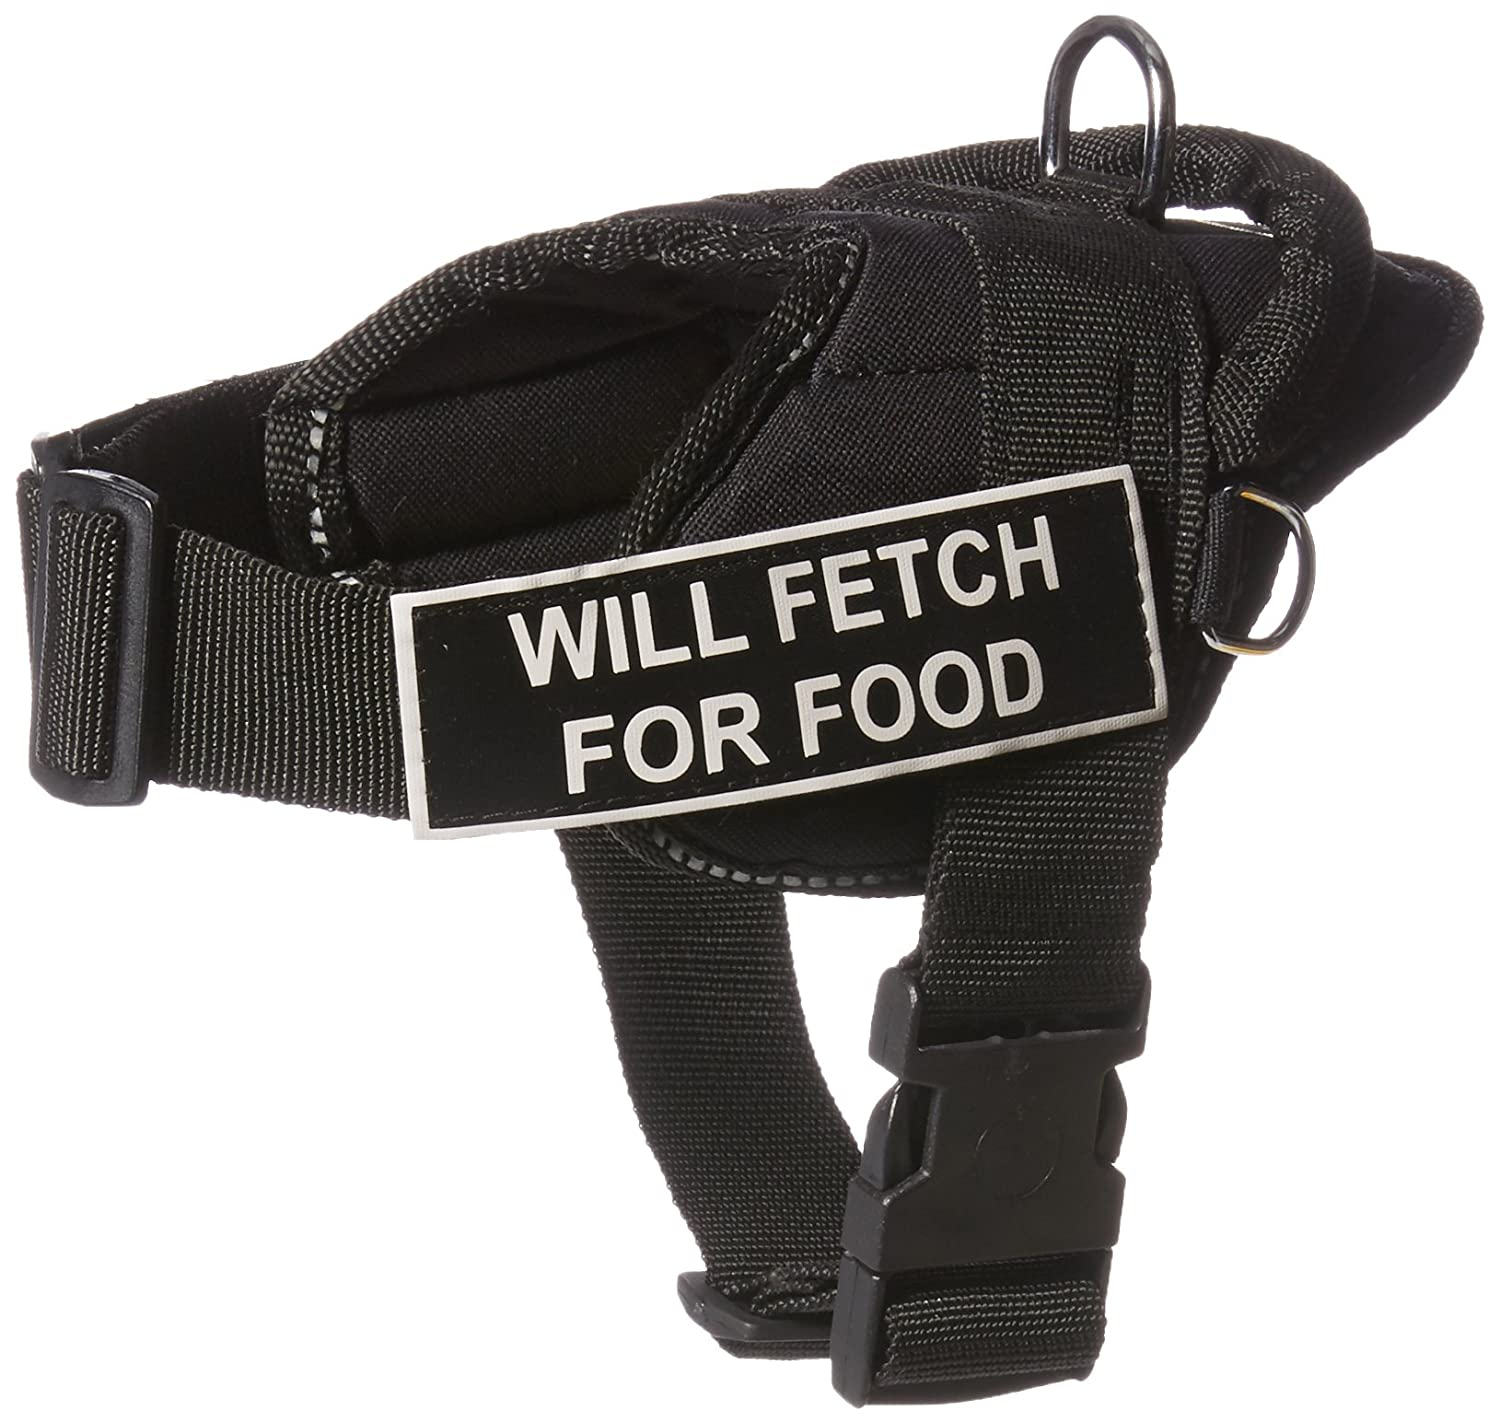 Dean & Tyler DT Fun Harness, Will Fetch For Food, Black with Reflective Trim, XX-Small Fits Girth Size  18-Inch to 22-Inch